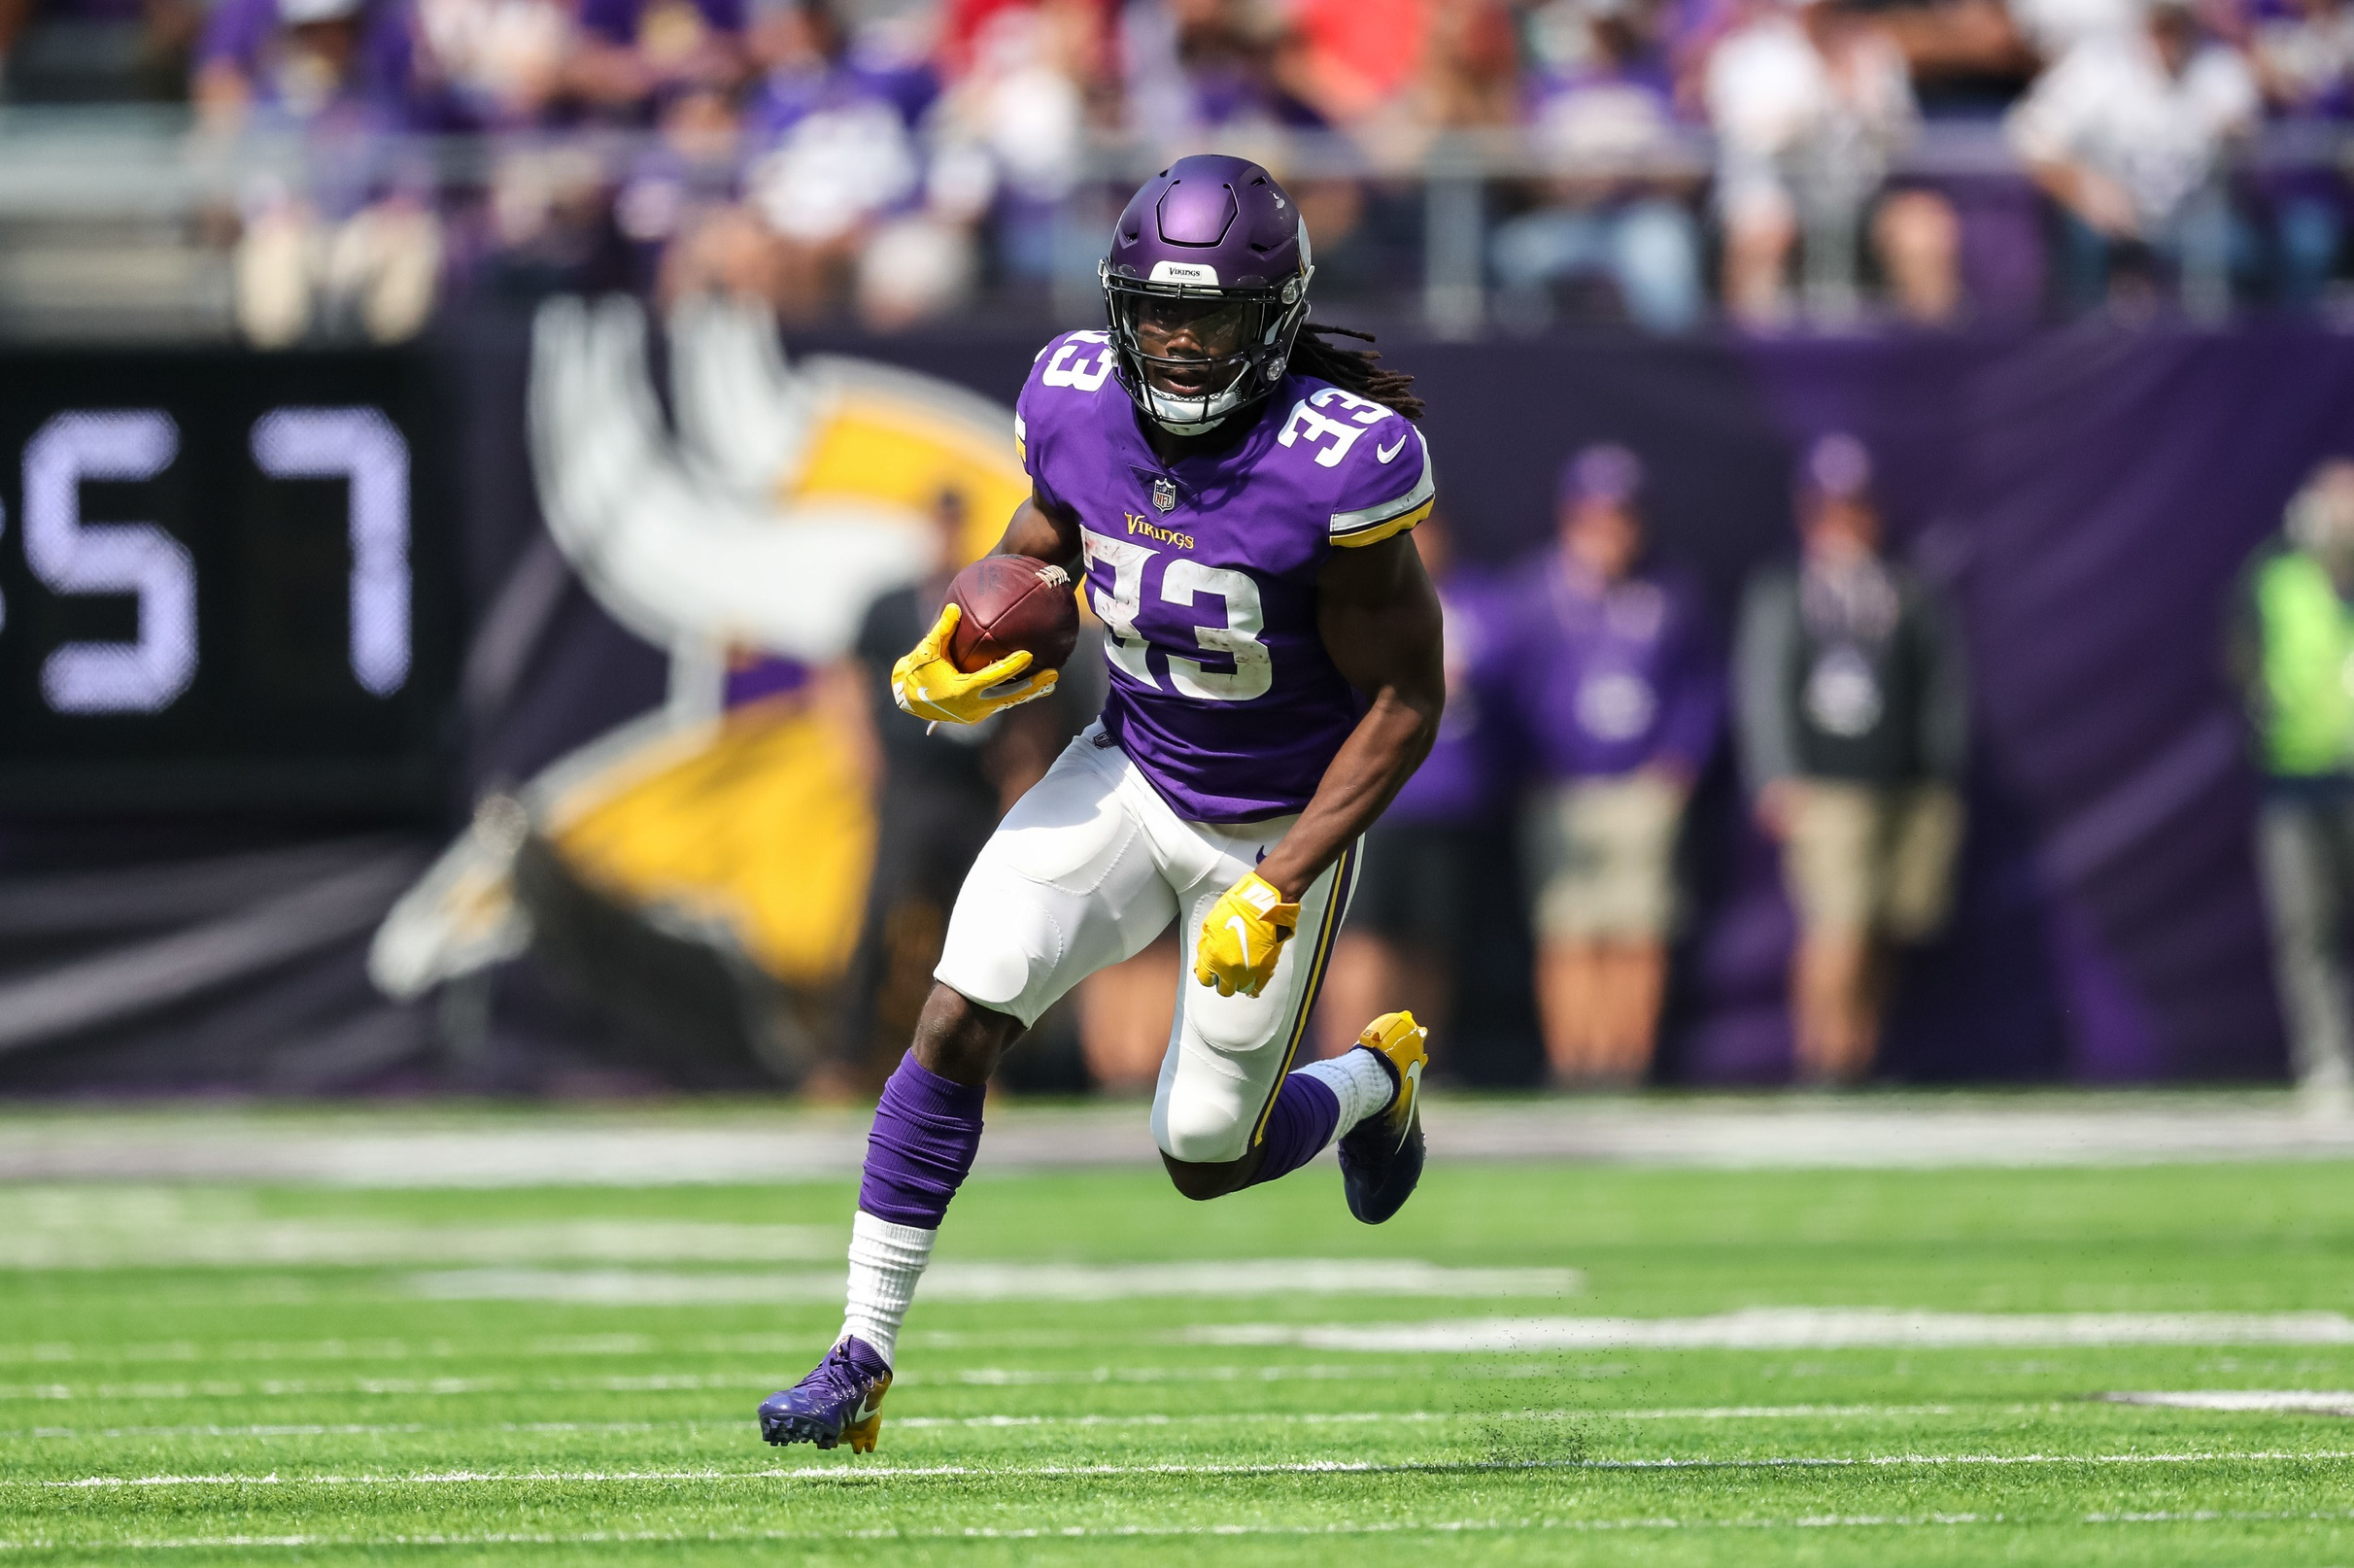 2019 Fantasy Football: Week 1 Running Back Touch, Target Projections